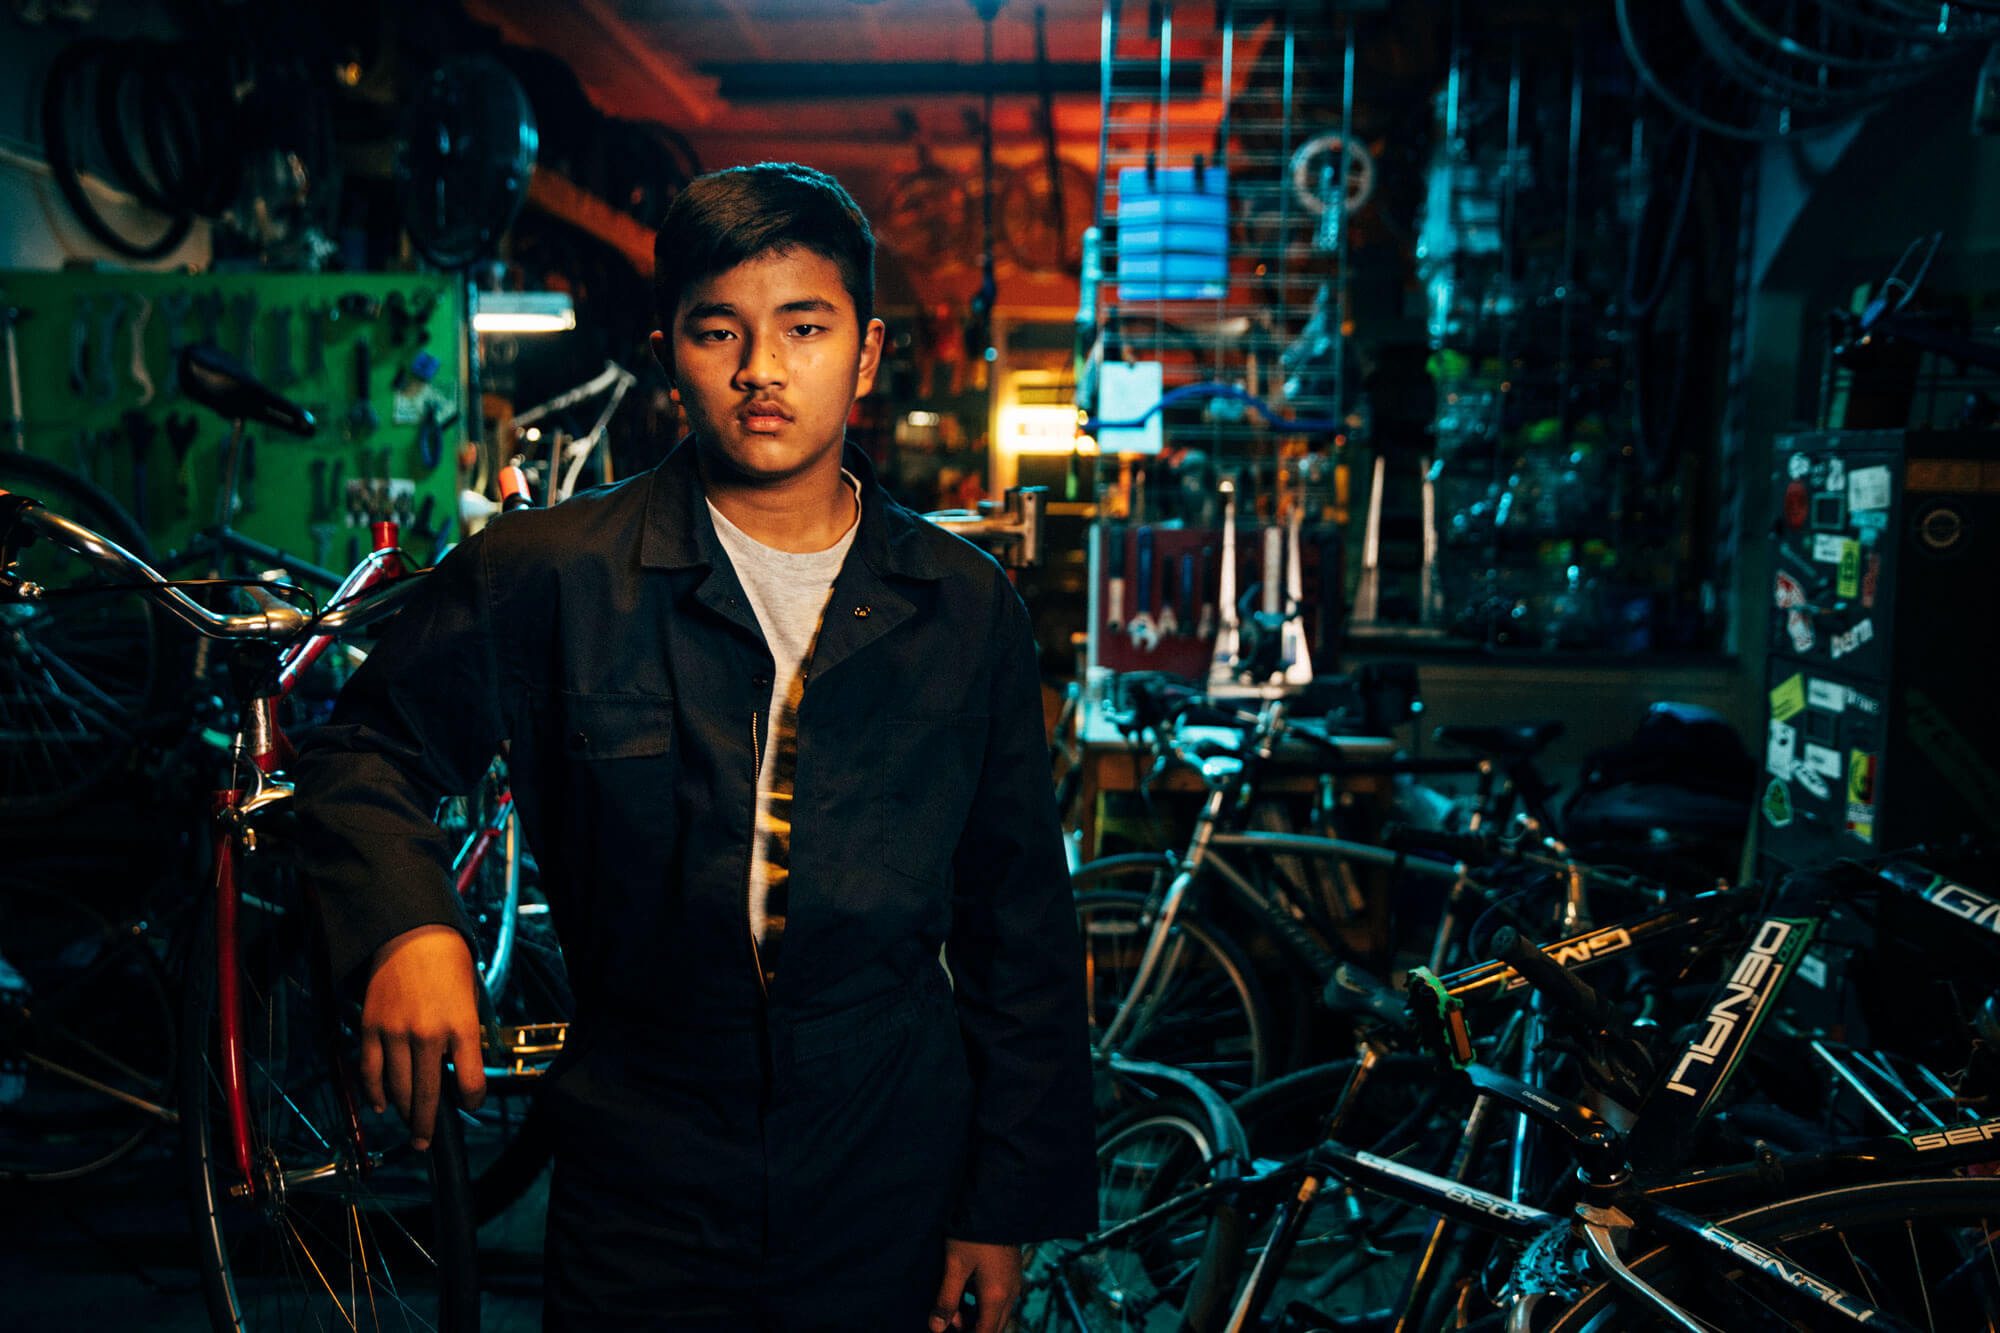 Young man poses at a bike shop in low-lighting